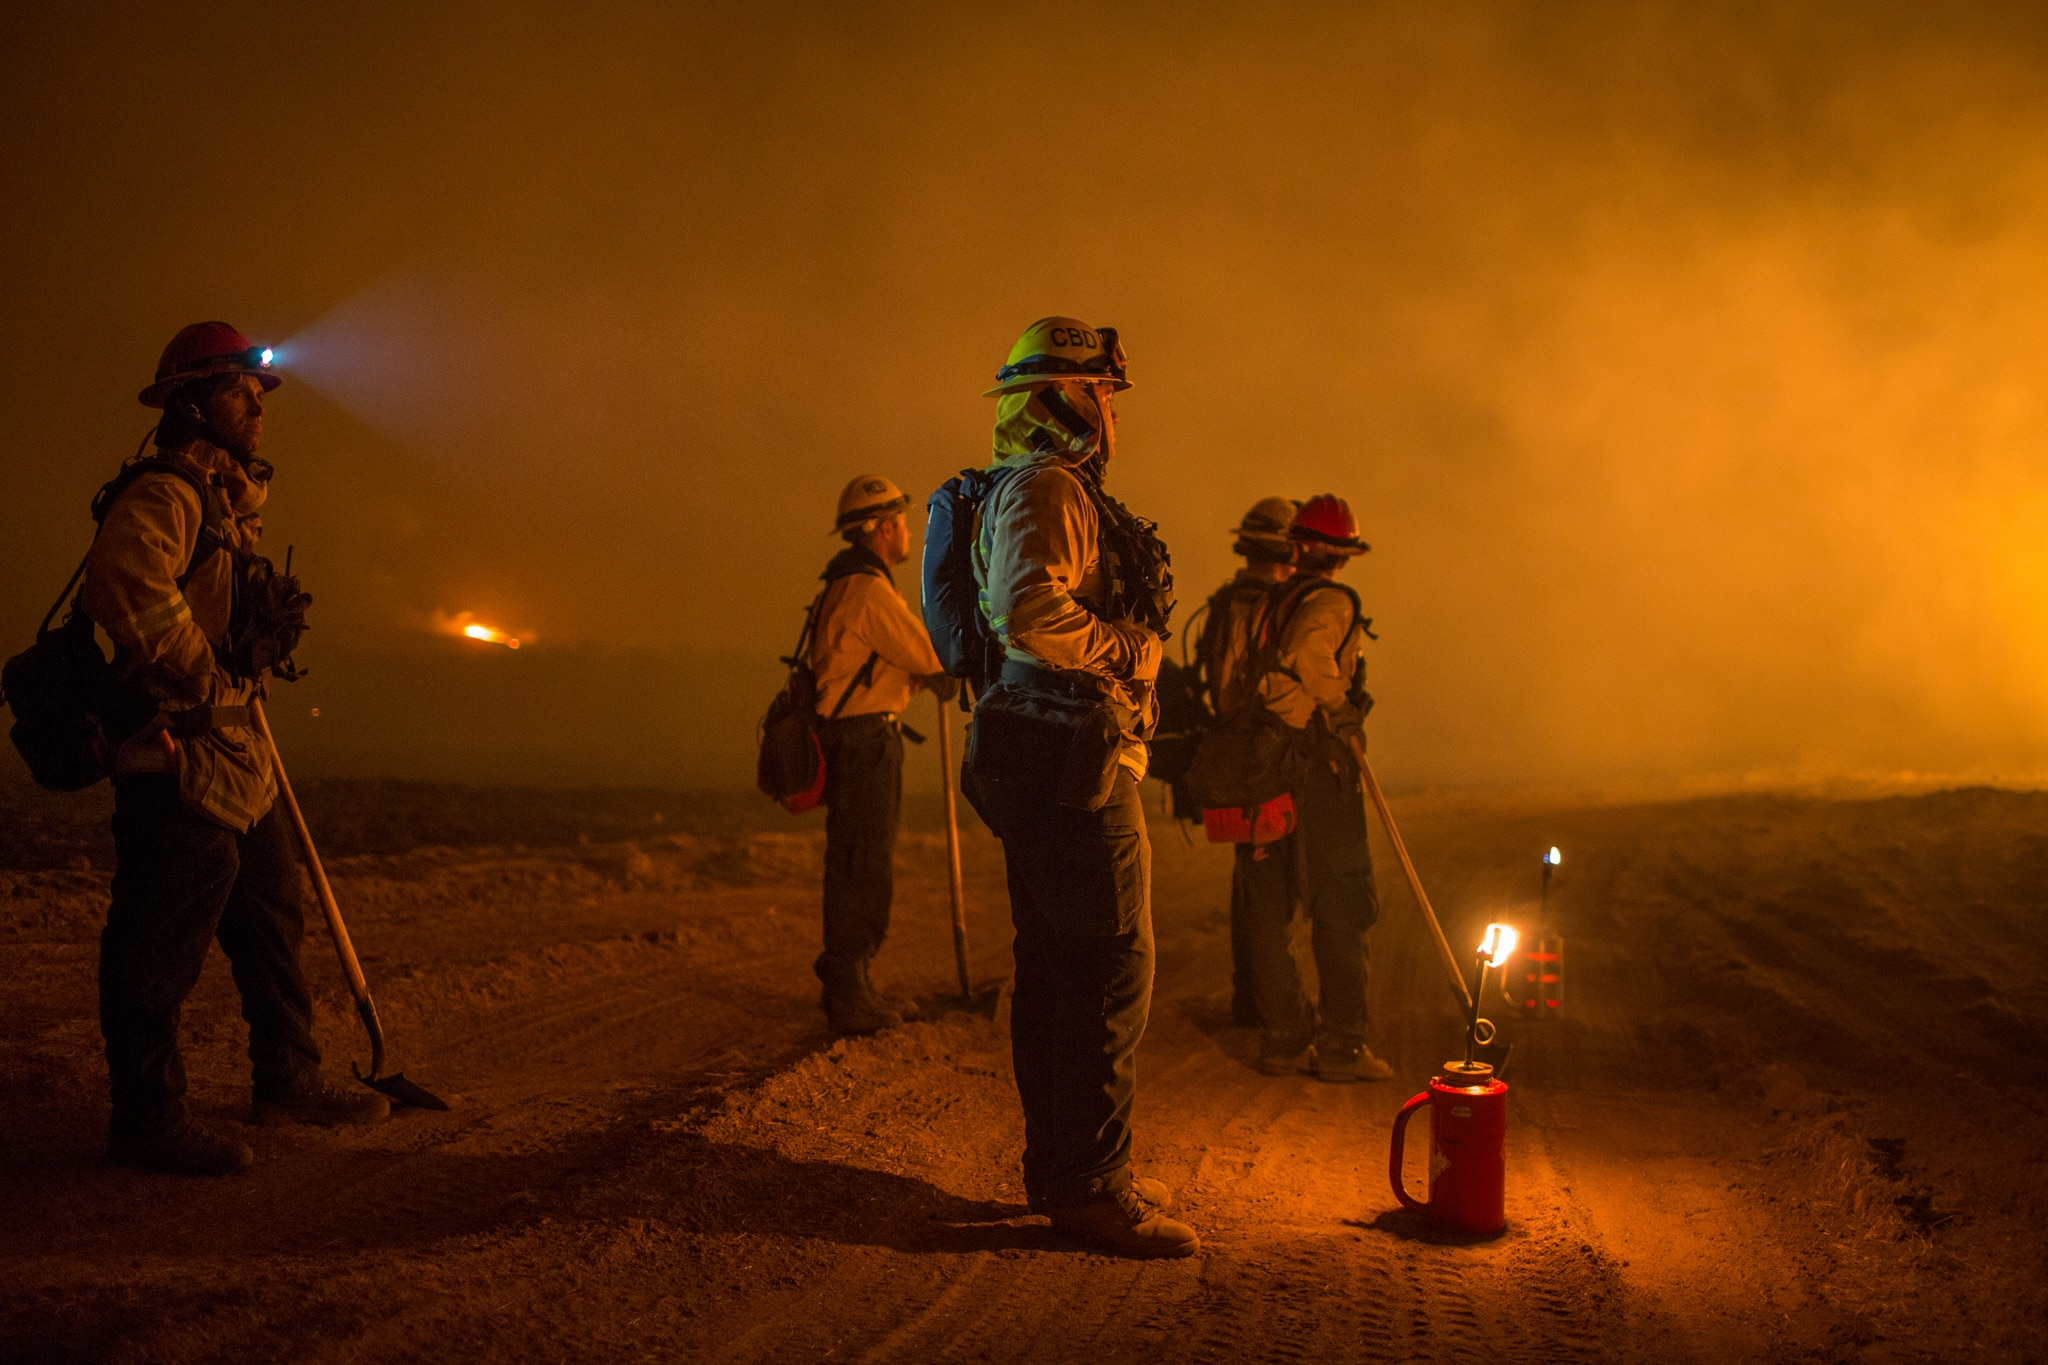 Firefighters looking into distance in orange glow of fire (© David McNew/Getty Images)